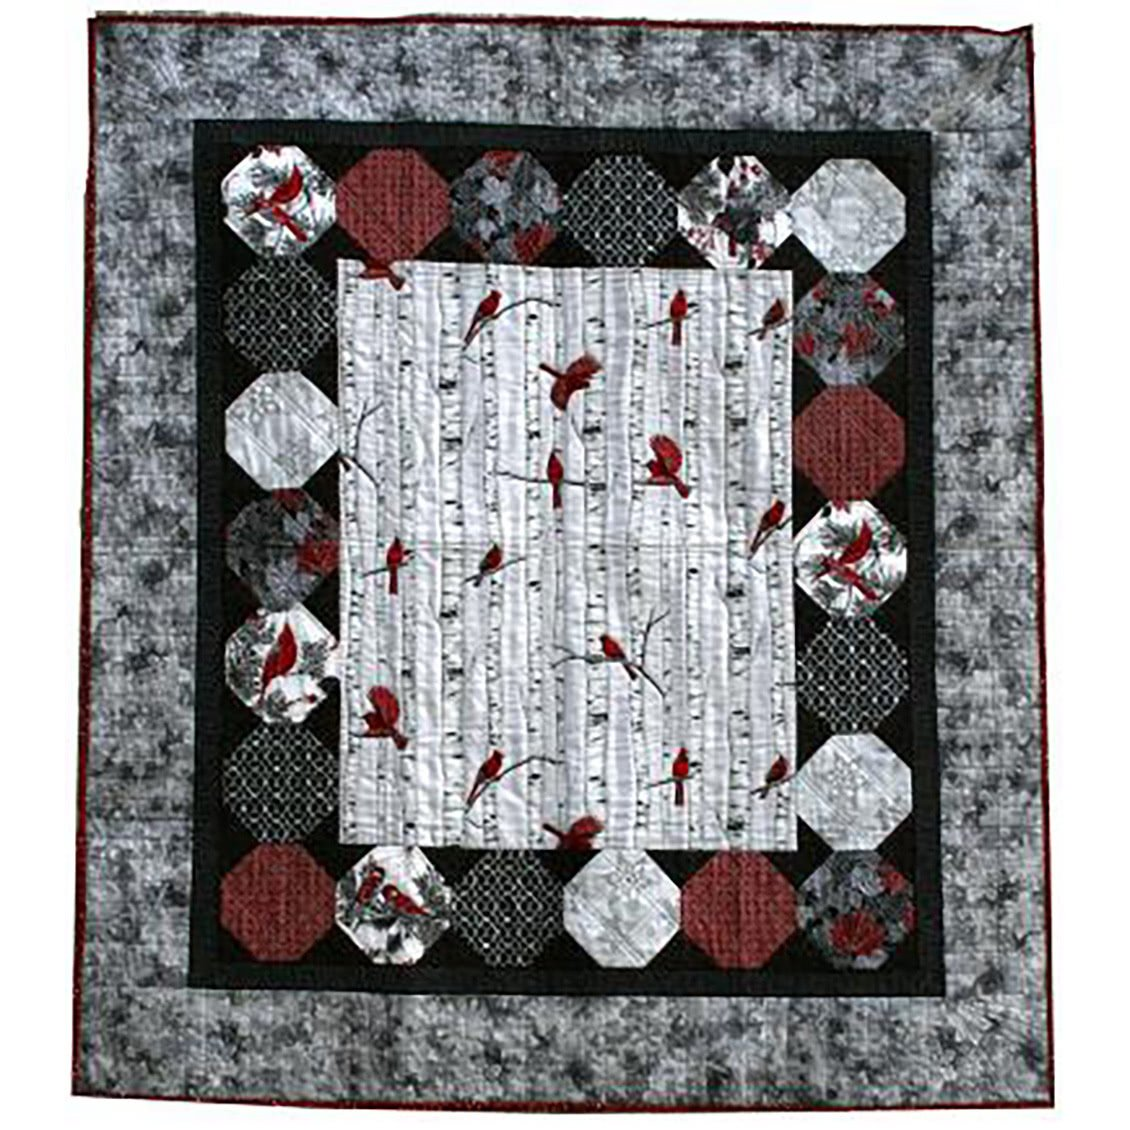 Rolling Along, Quilting Pattern by Whirligig Designs : RA-WD